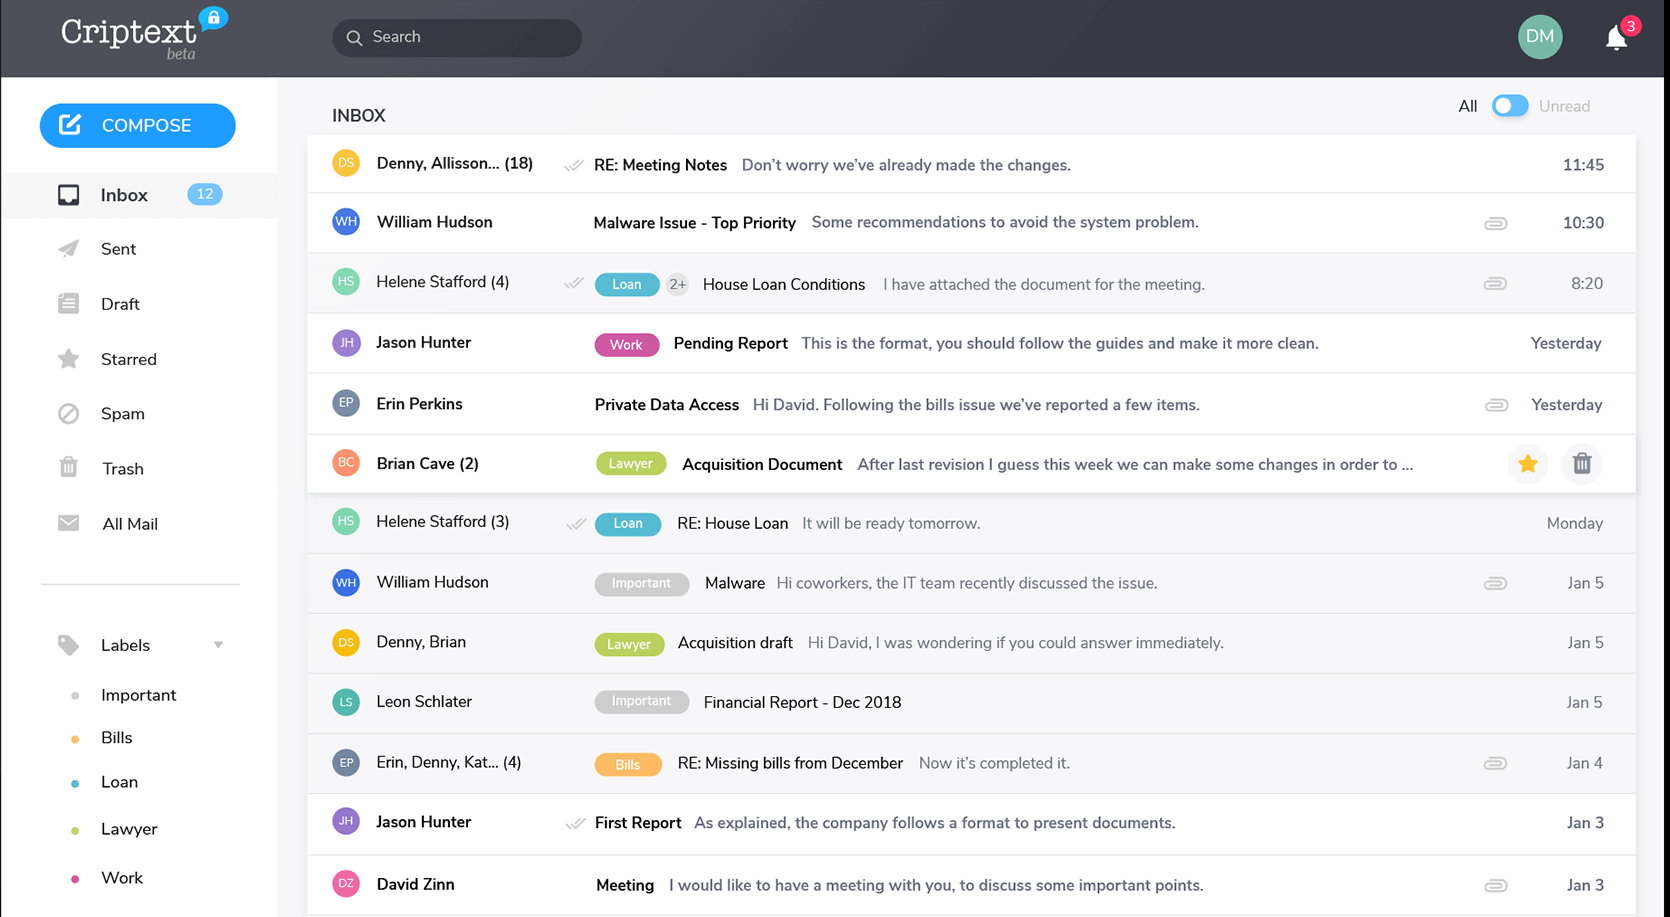 Criptext - secure email built on privacy